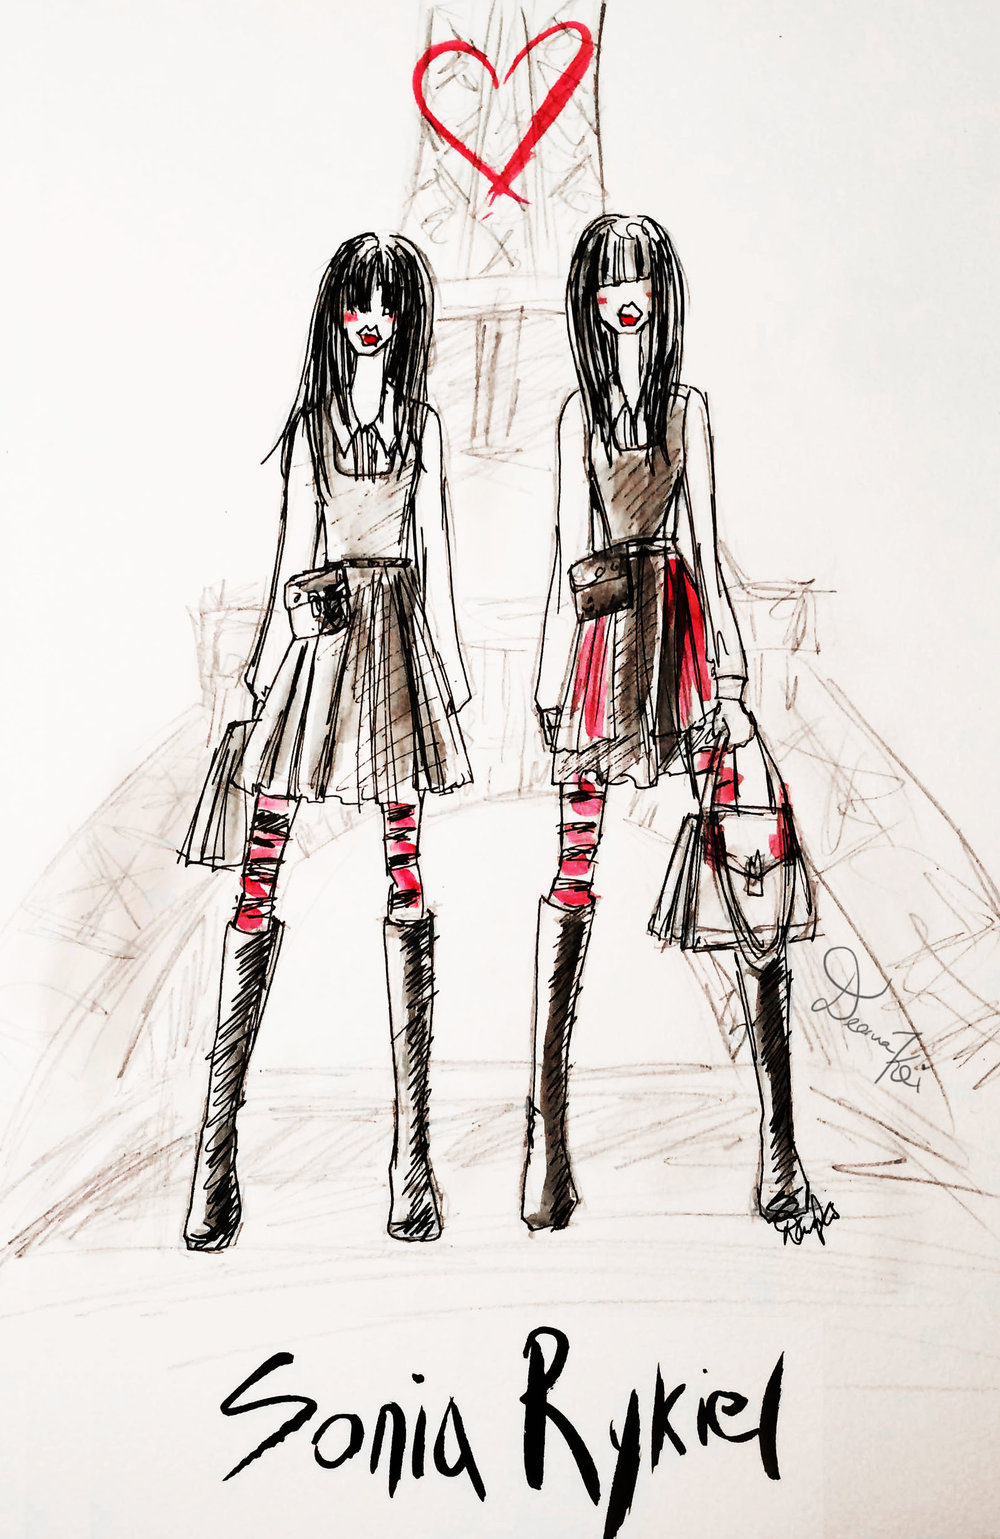 Rough sketch of a Sonia Rykiel FW16.17 Ad Campaign Featuring Grace Hartzel and Matilda Dods